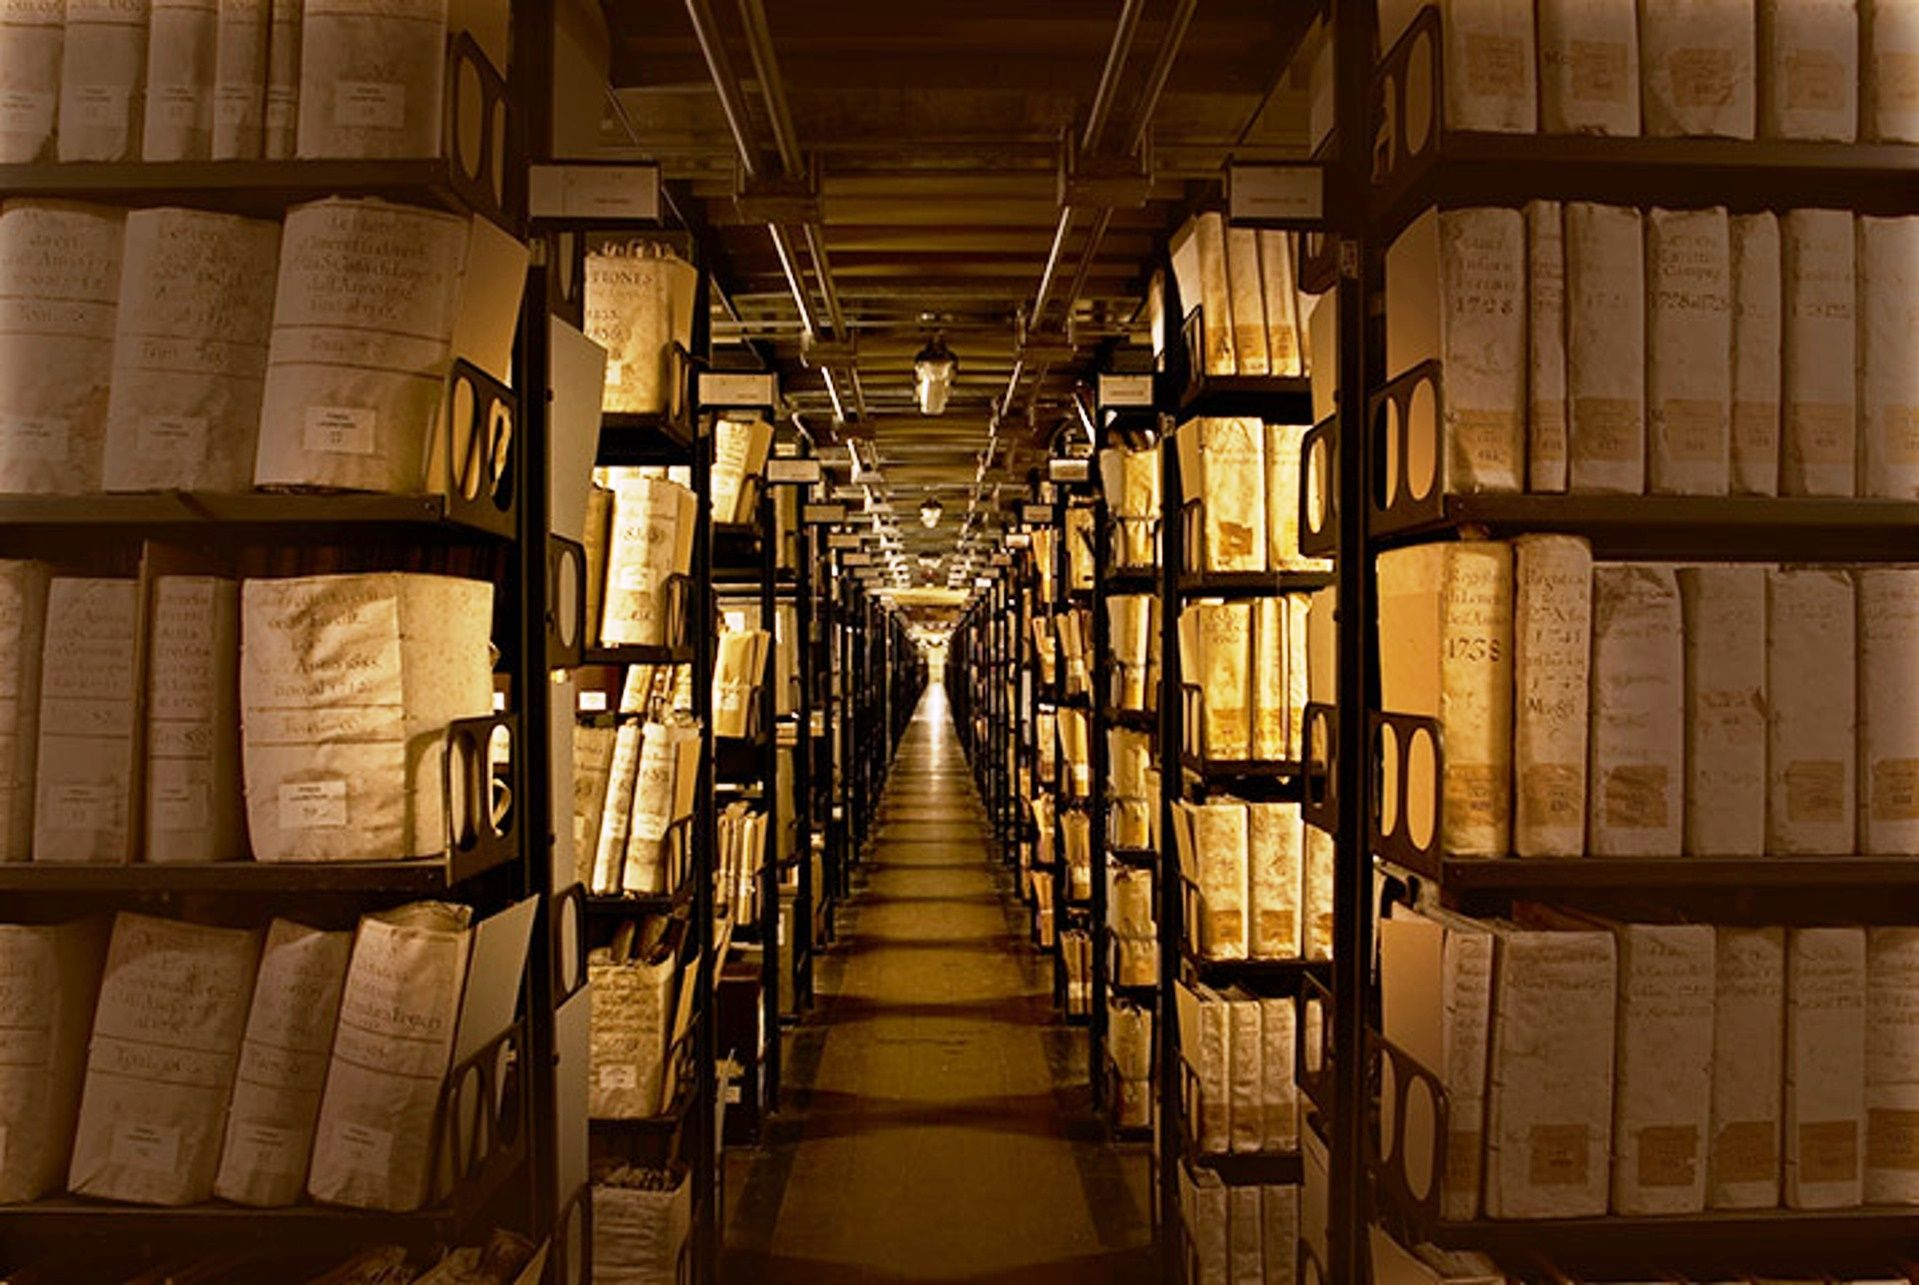 Gallery Of The Metallic Shelves In The Vatican Archive